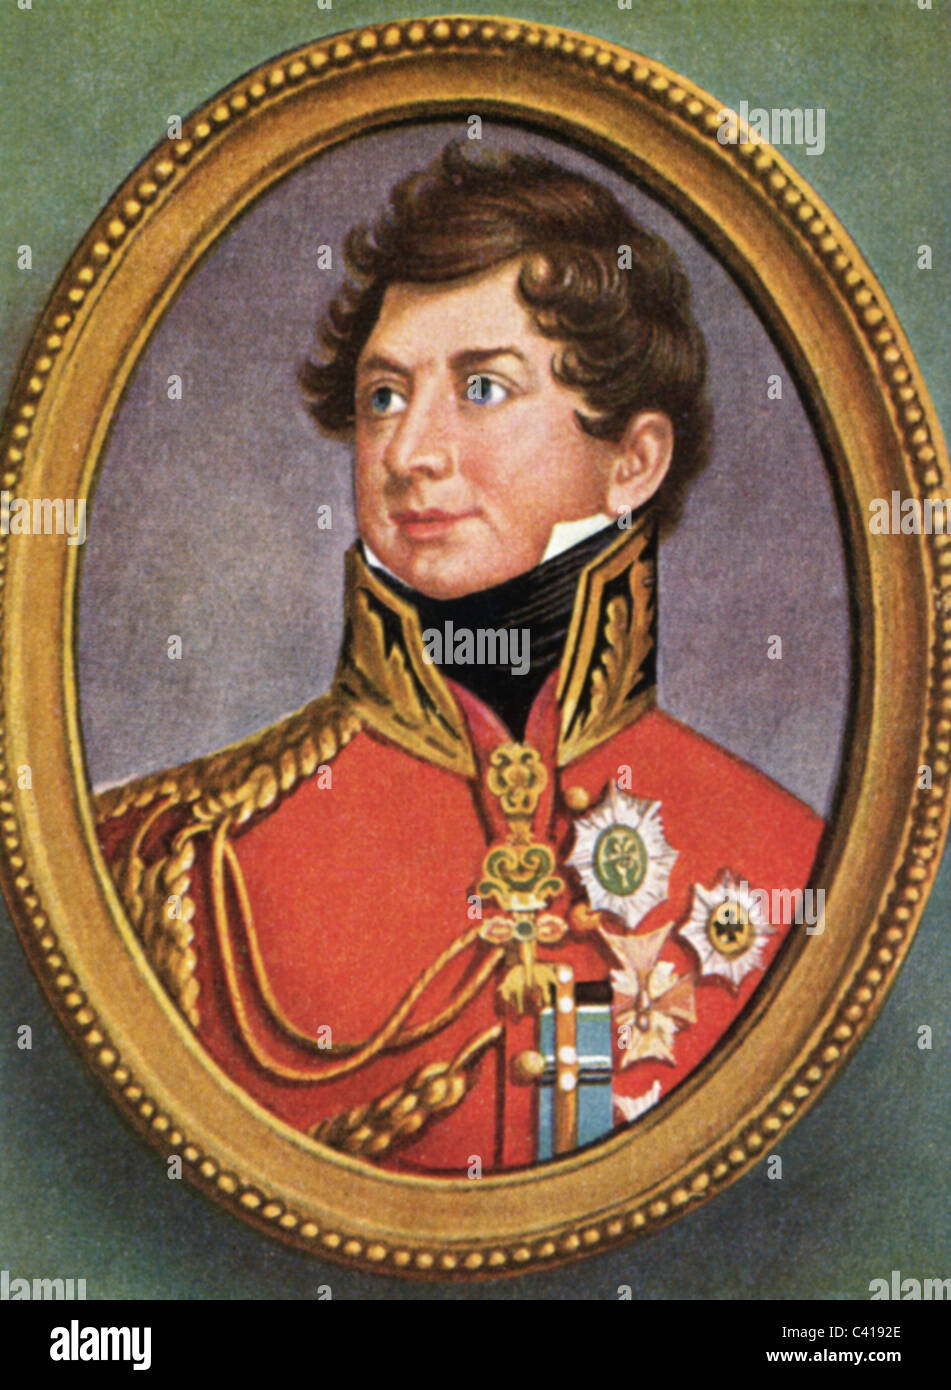 George IV, 12.8.1762 - 26.6.1830, King of Great Britain 29.1.1820 - 26.6.1830, portrait, colour print after miniature, - Stock Image